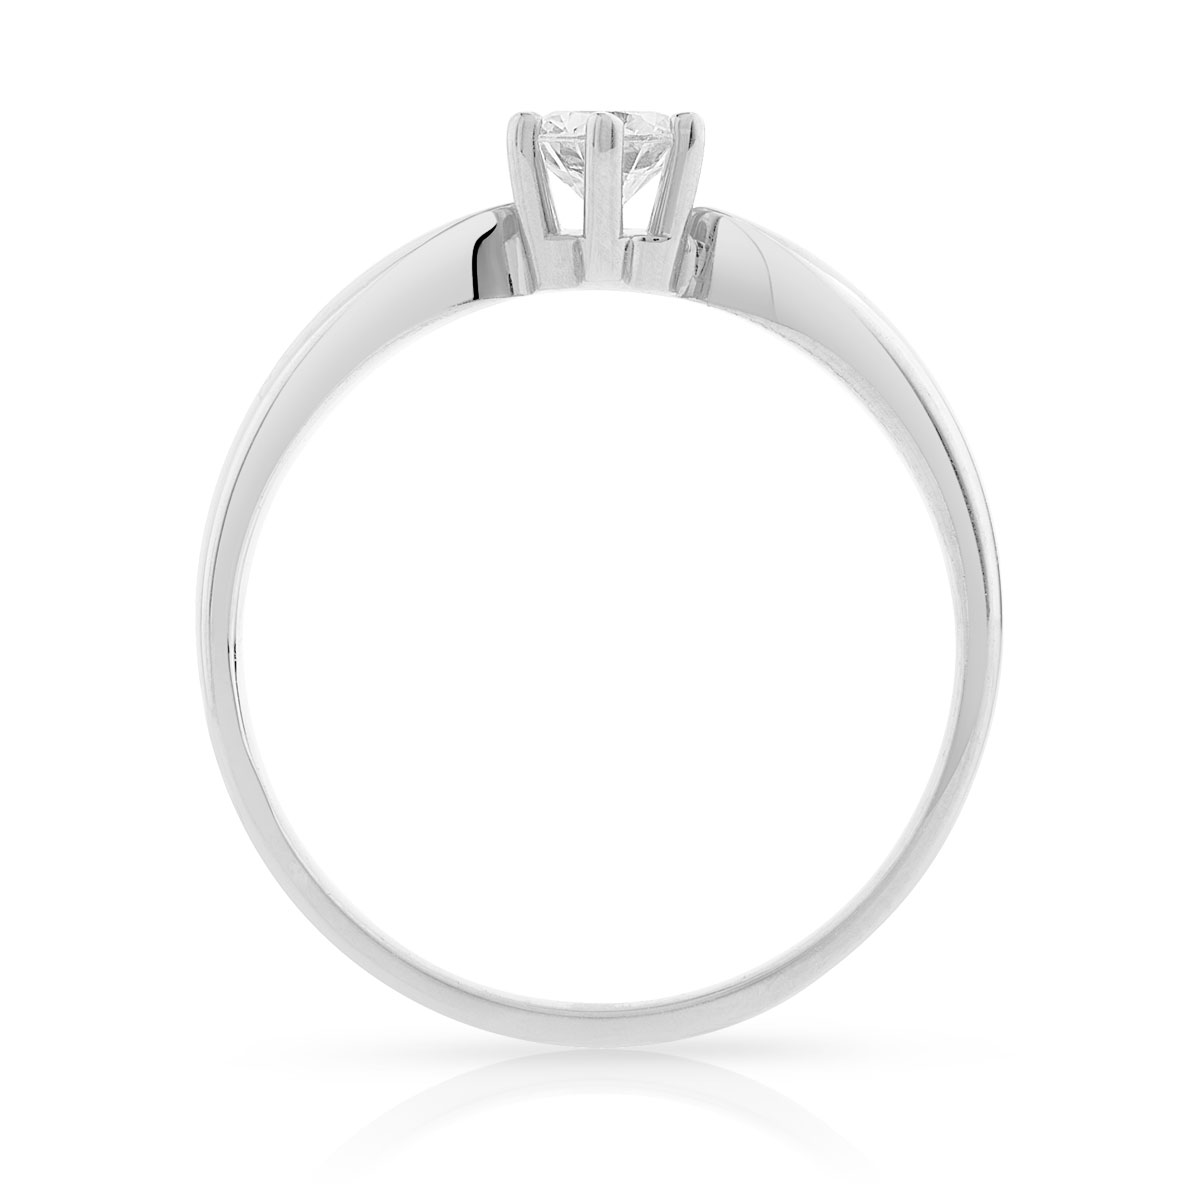 Bague Solitaire or 750 blanc diamant 0.30 ct - vue V2